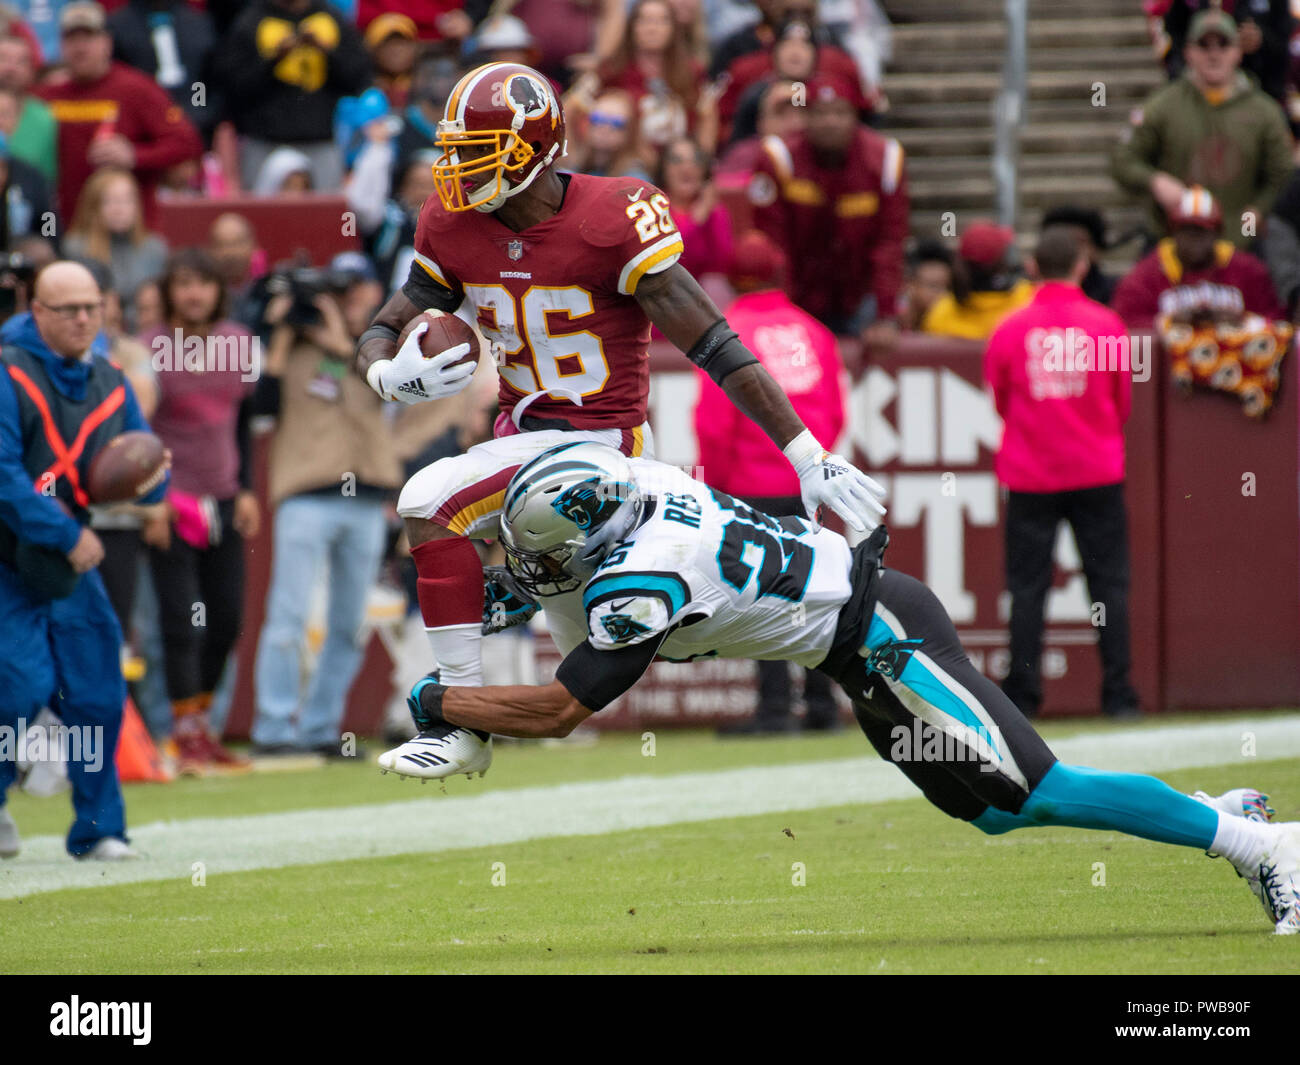 da0a9f3cb78 Washington Redskins running back Adrian Peterson (26) is tackled by Carolina  Panthers strong safety